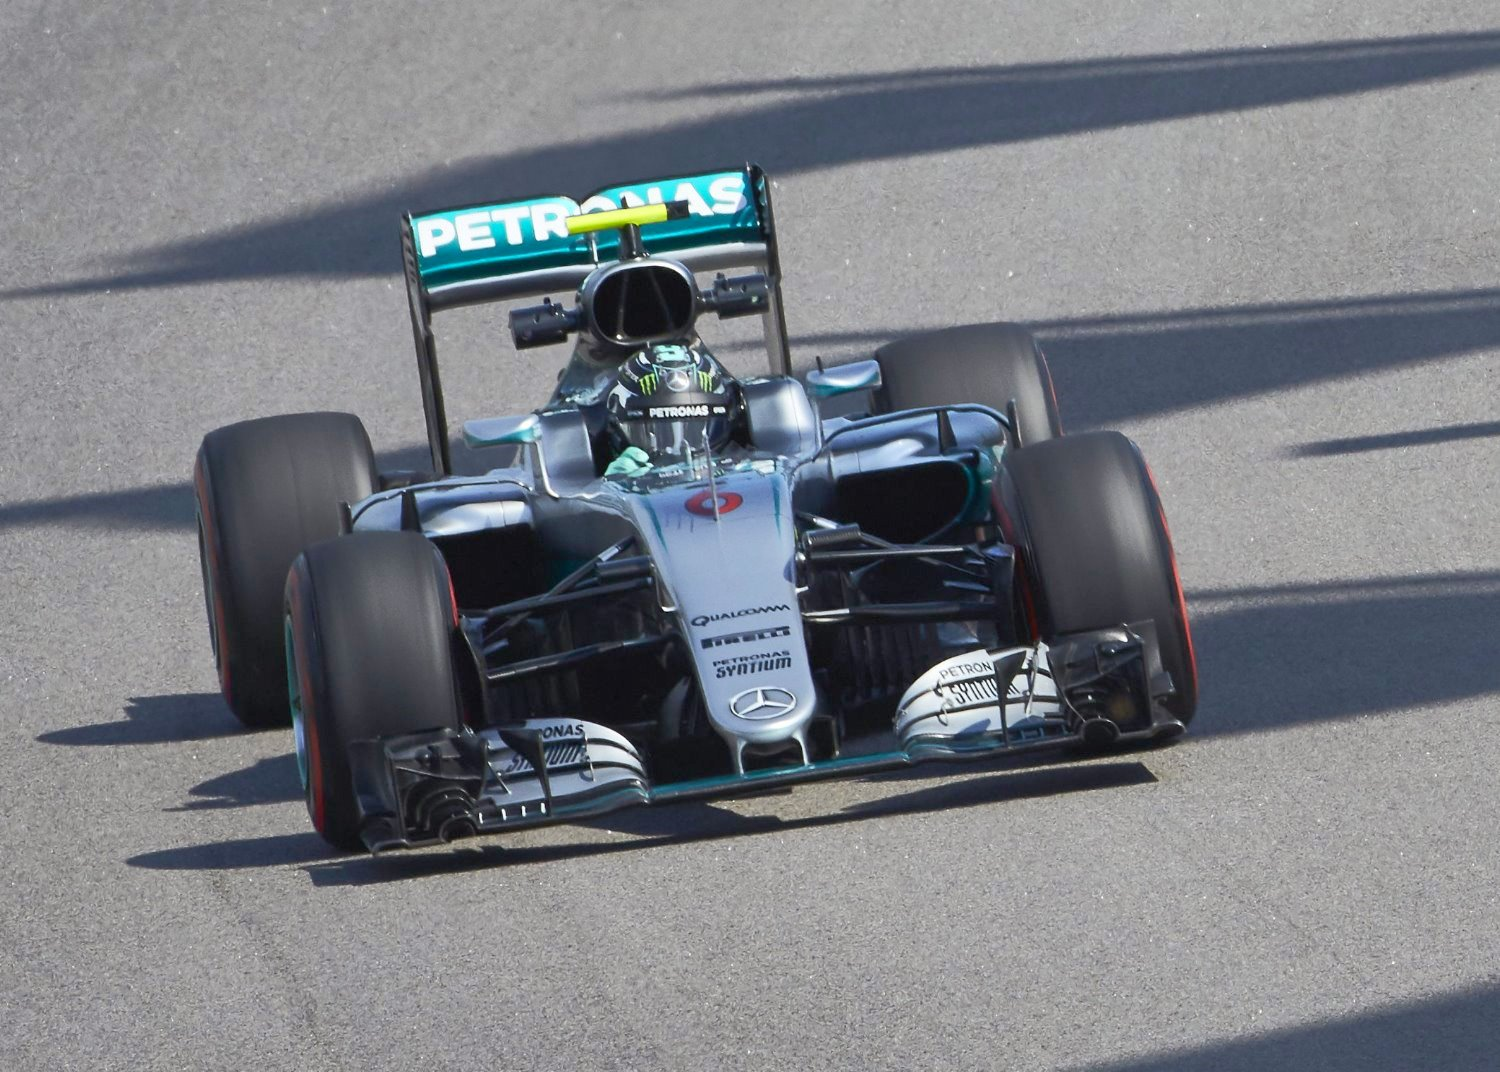 Rosberg eases to easy pole, his 2nd of the year